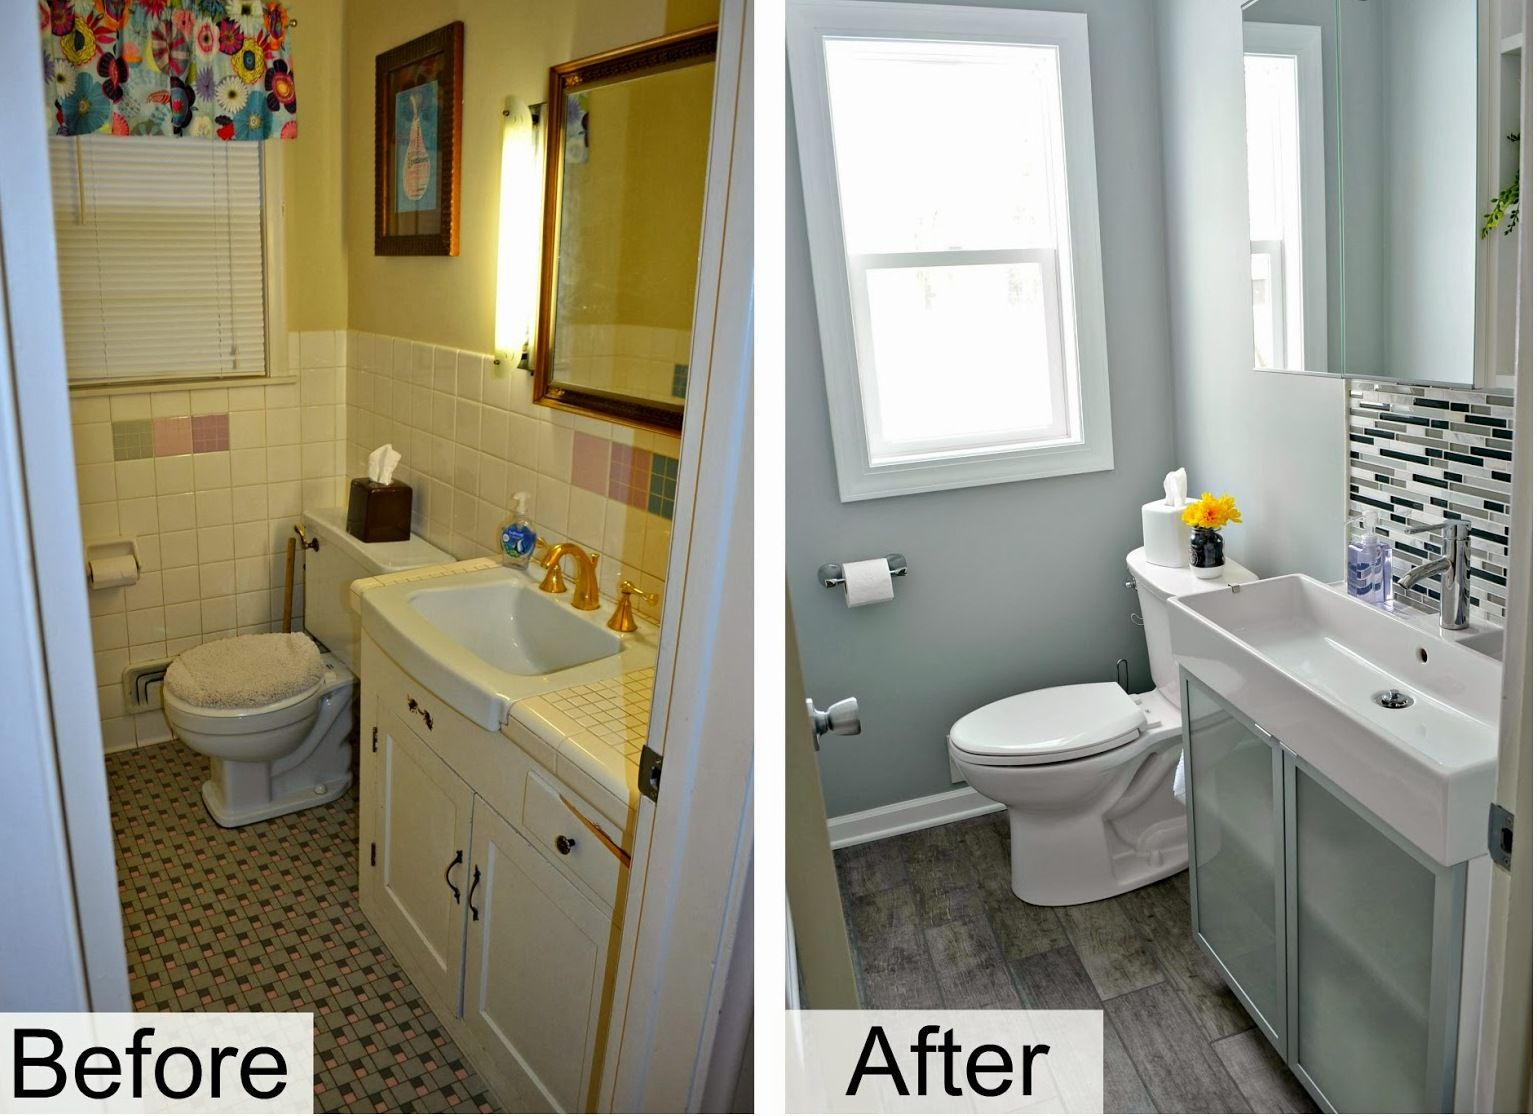 Small Bathroom Renovation Ideas diy bathroom remodel ideas for average people | diy bathroom